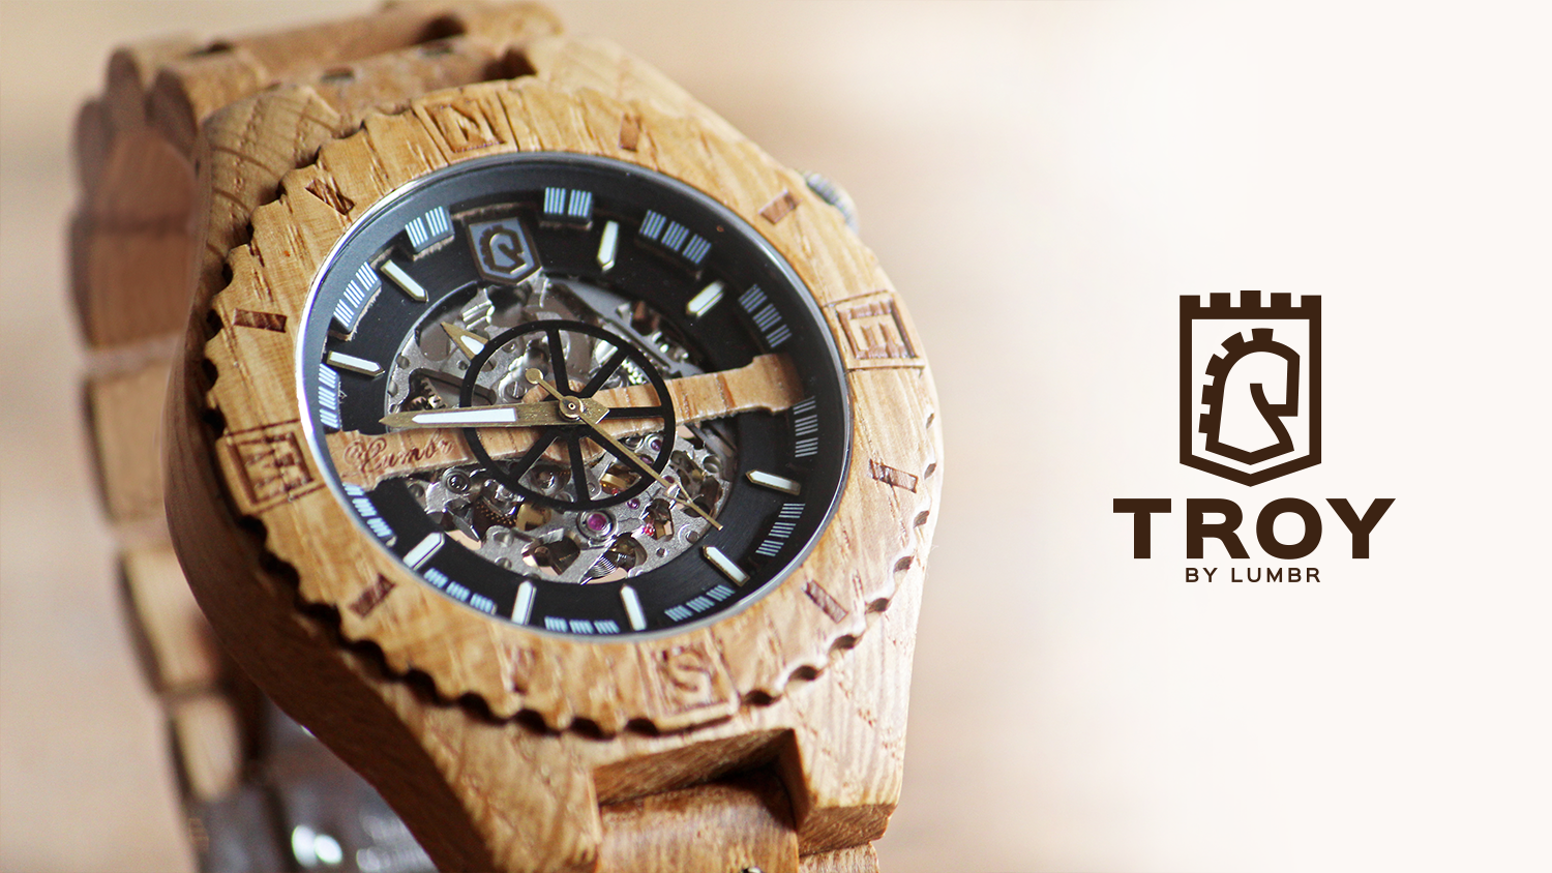 Handcrafted from oak shipwood, Troy is the first wooden watch to have a visible mechanical skeleton with automatic movement